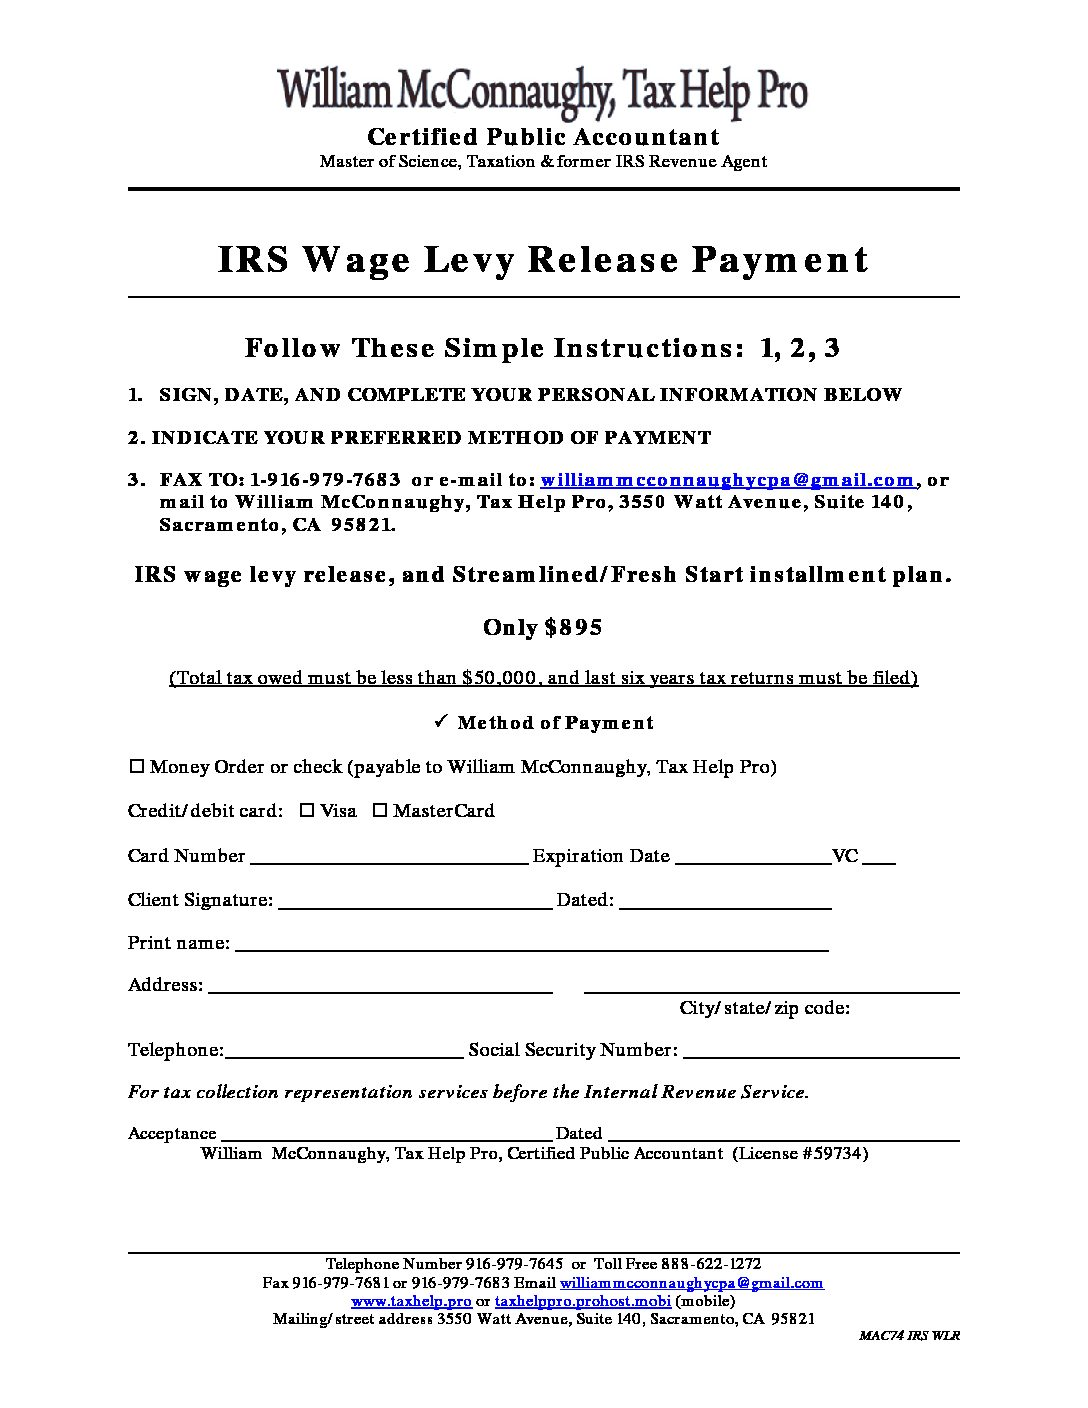 Wage Levy Release Payment Plan